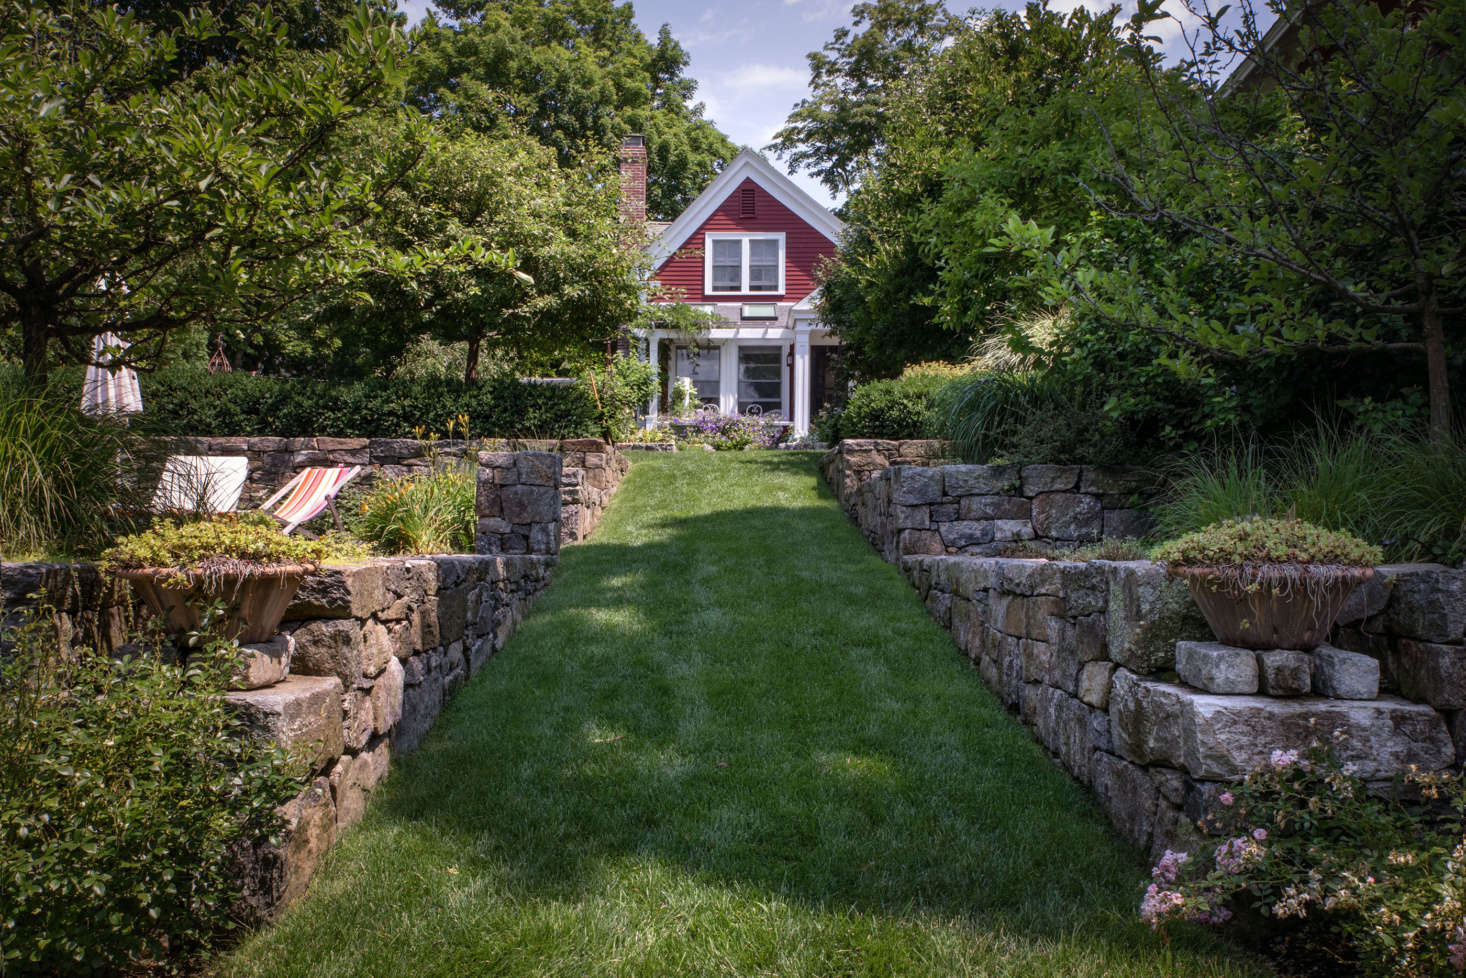 Photograph by Justine Hand, from Landscape Designer Visit: A Charming Cottage Garden Outside of Boston.